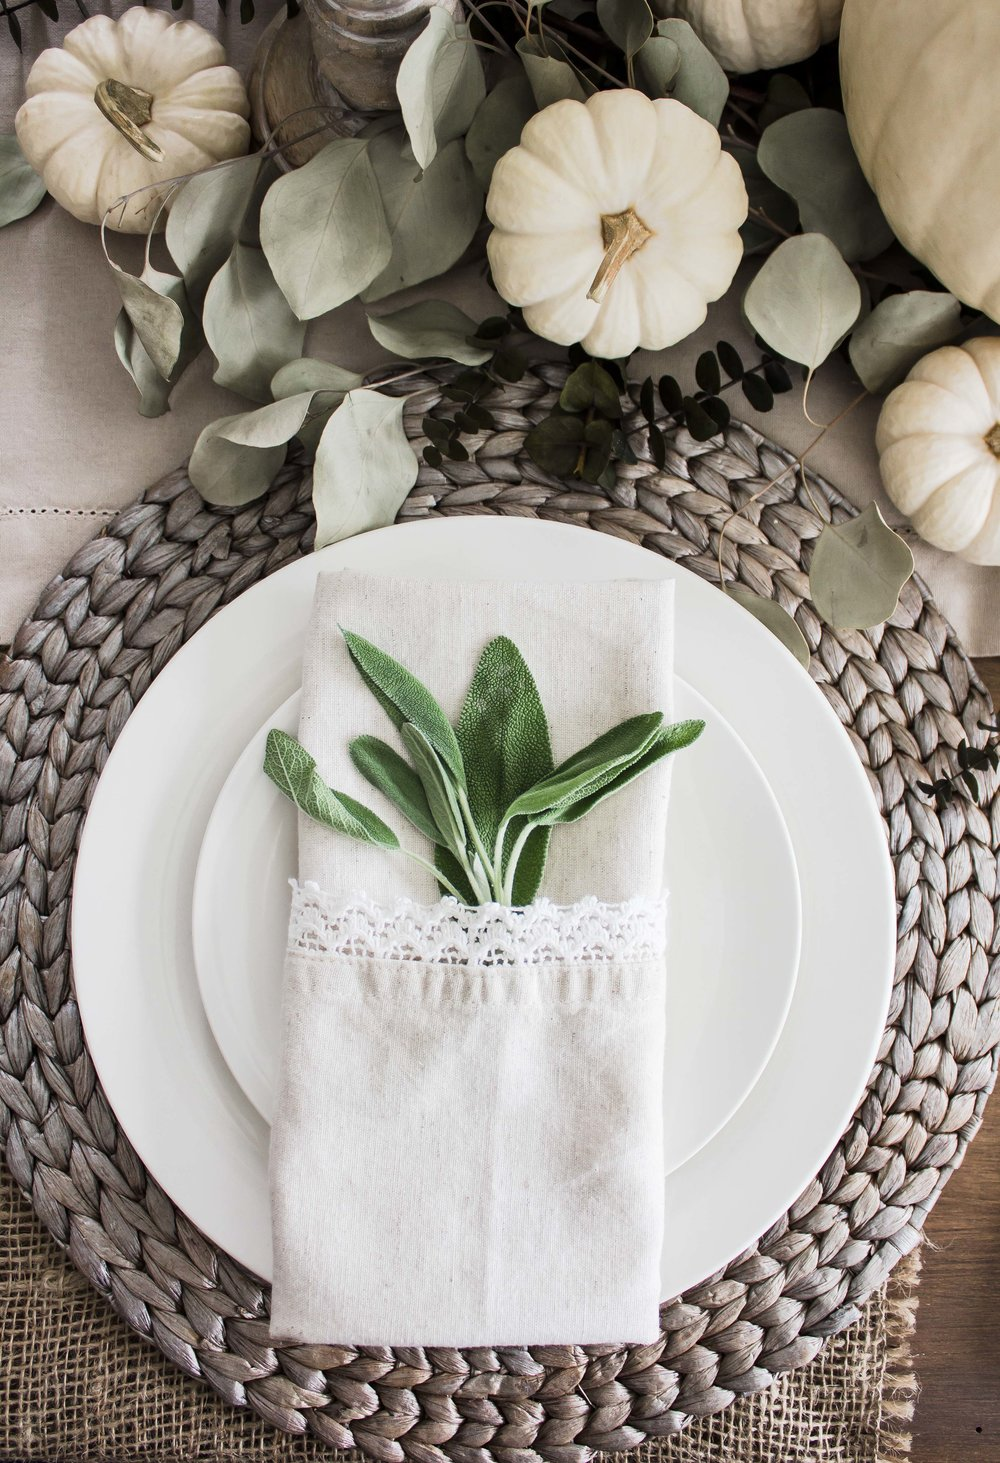 Braided charger:  Pier1  | White dishes: Atlantic Superstore | Linen Napkins:  Pier1